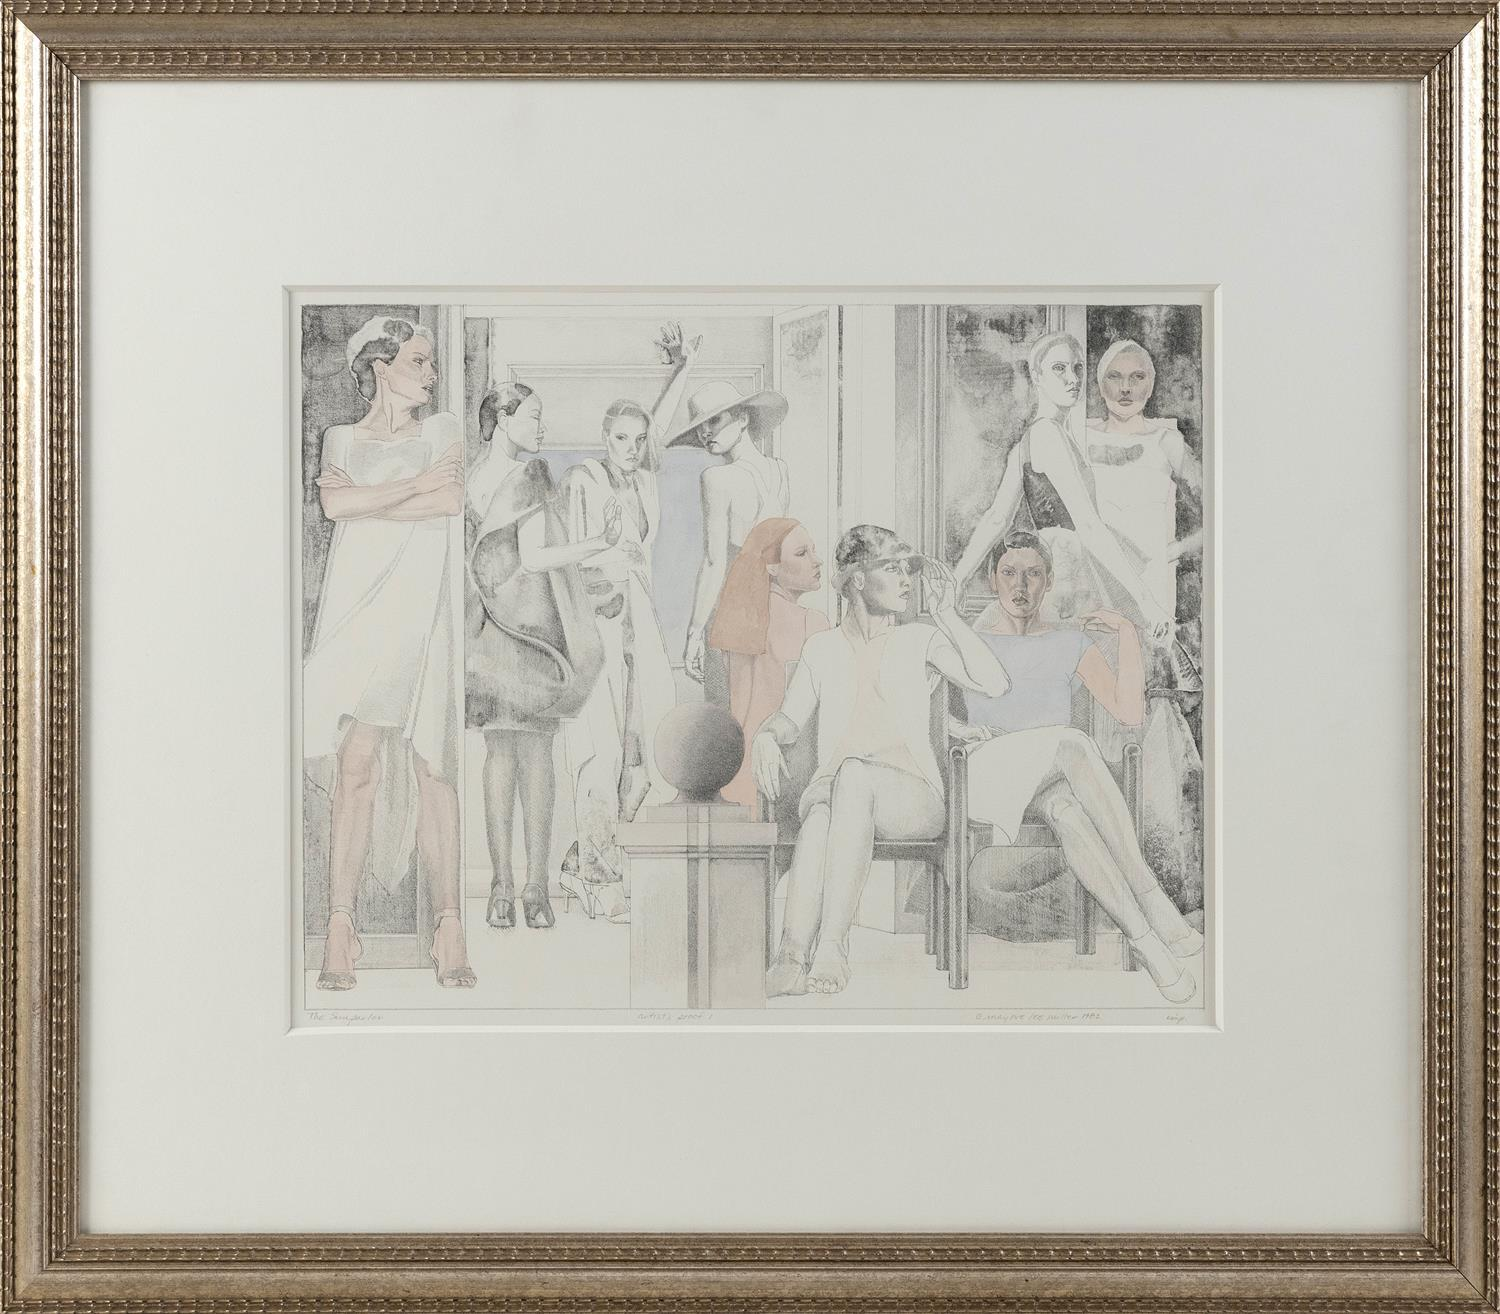 "FASHION PRINT ""THE SUN PARLOR"" Titled lower left. Signed and dated lower right. Artist's proof. 13"" x 17"". Framed 24"" x 28""."